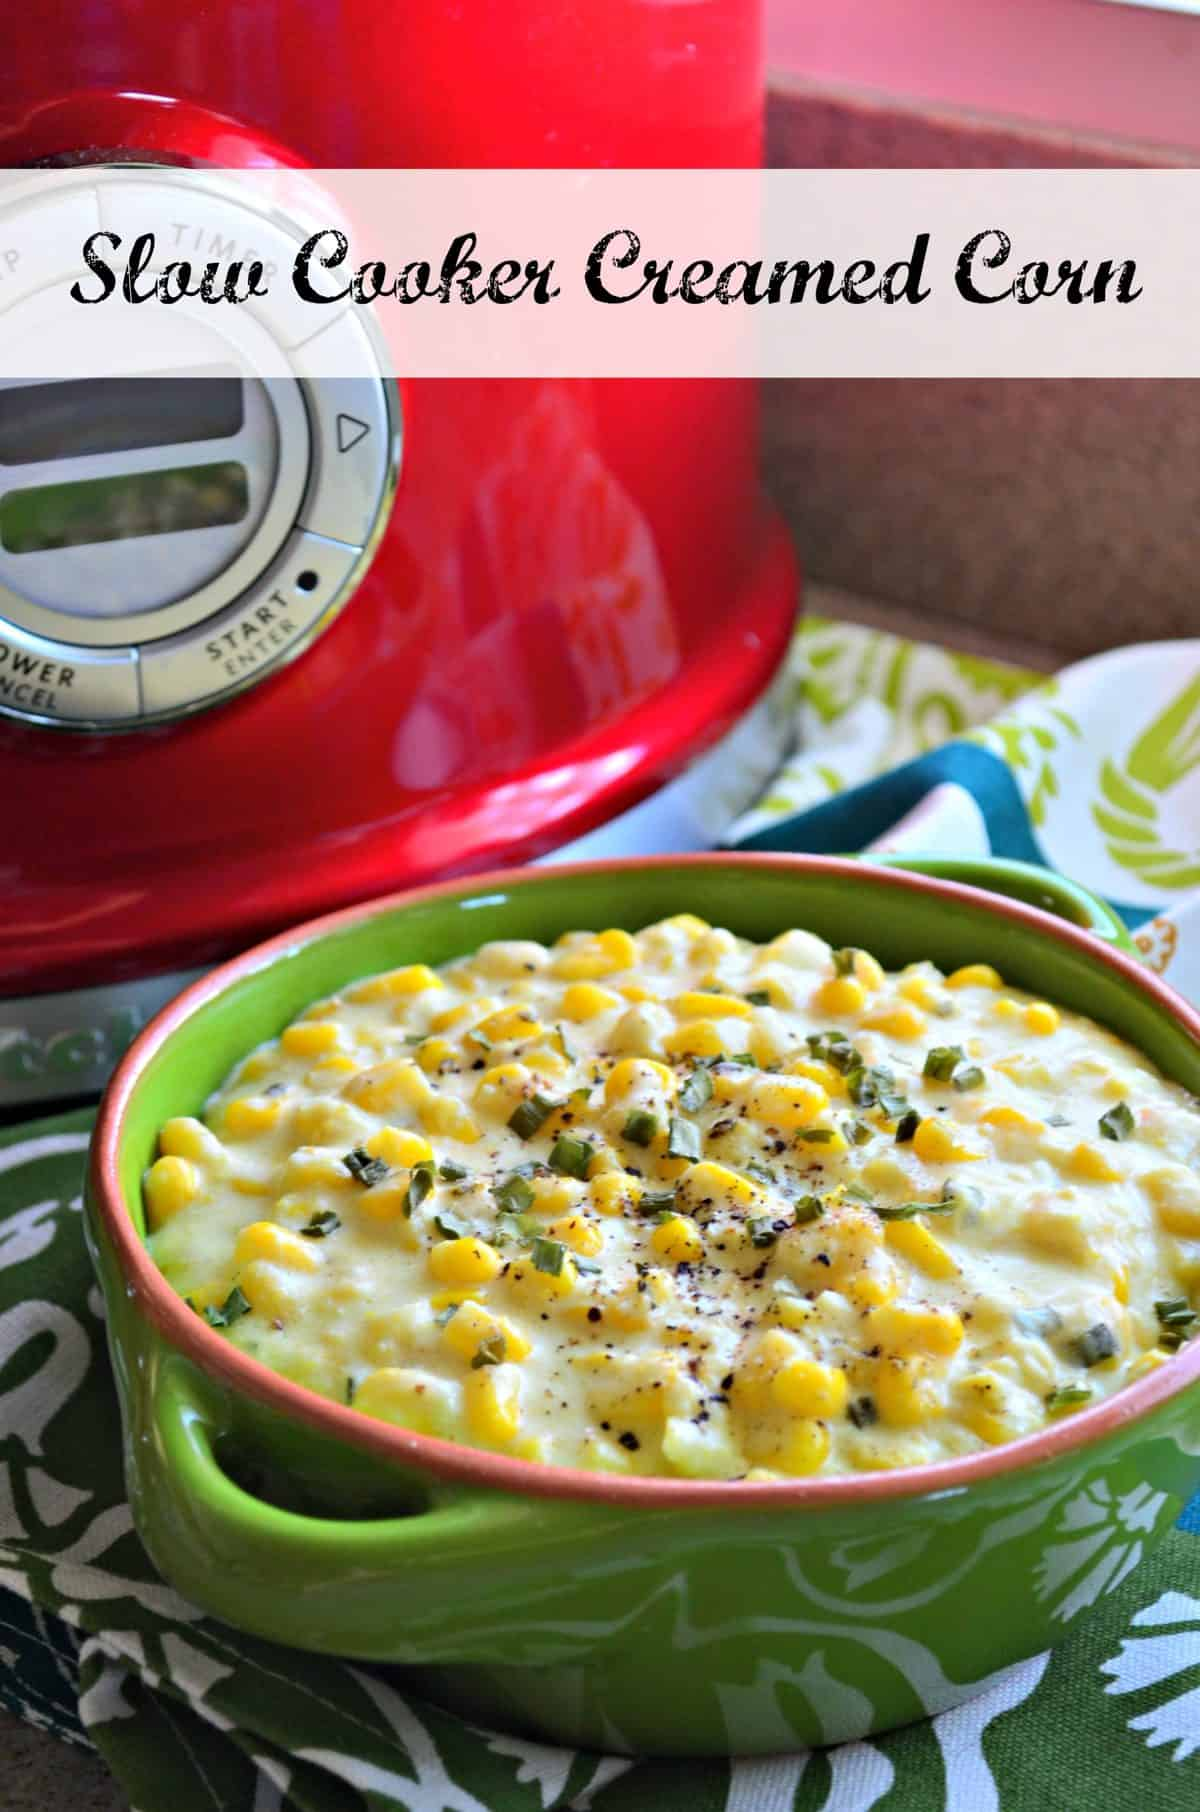 creamed corn topped with spices and herbs in green bowl in front of red slow cooker with title text.